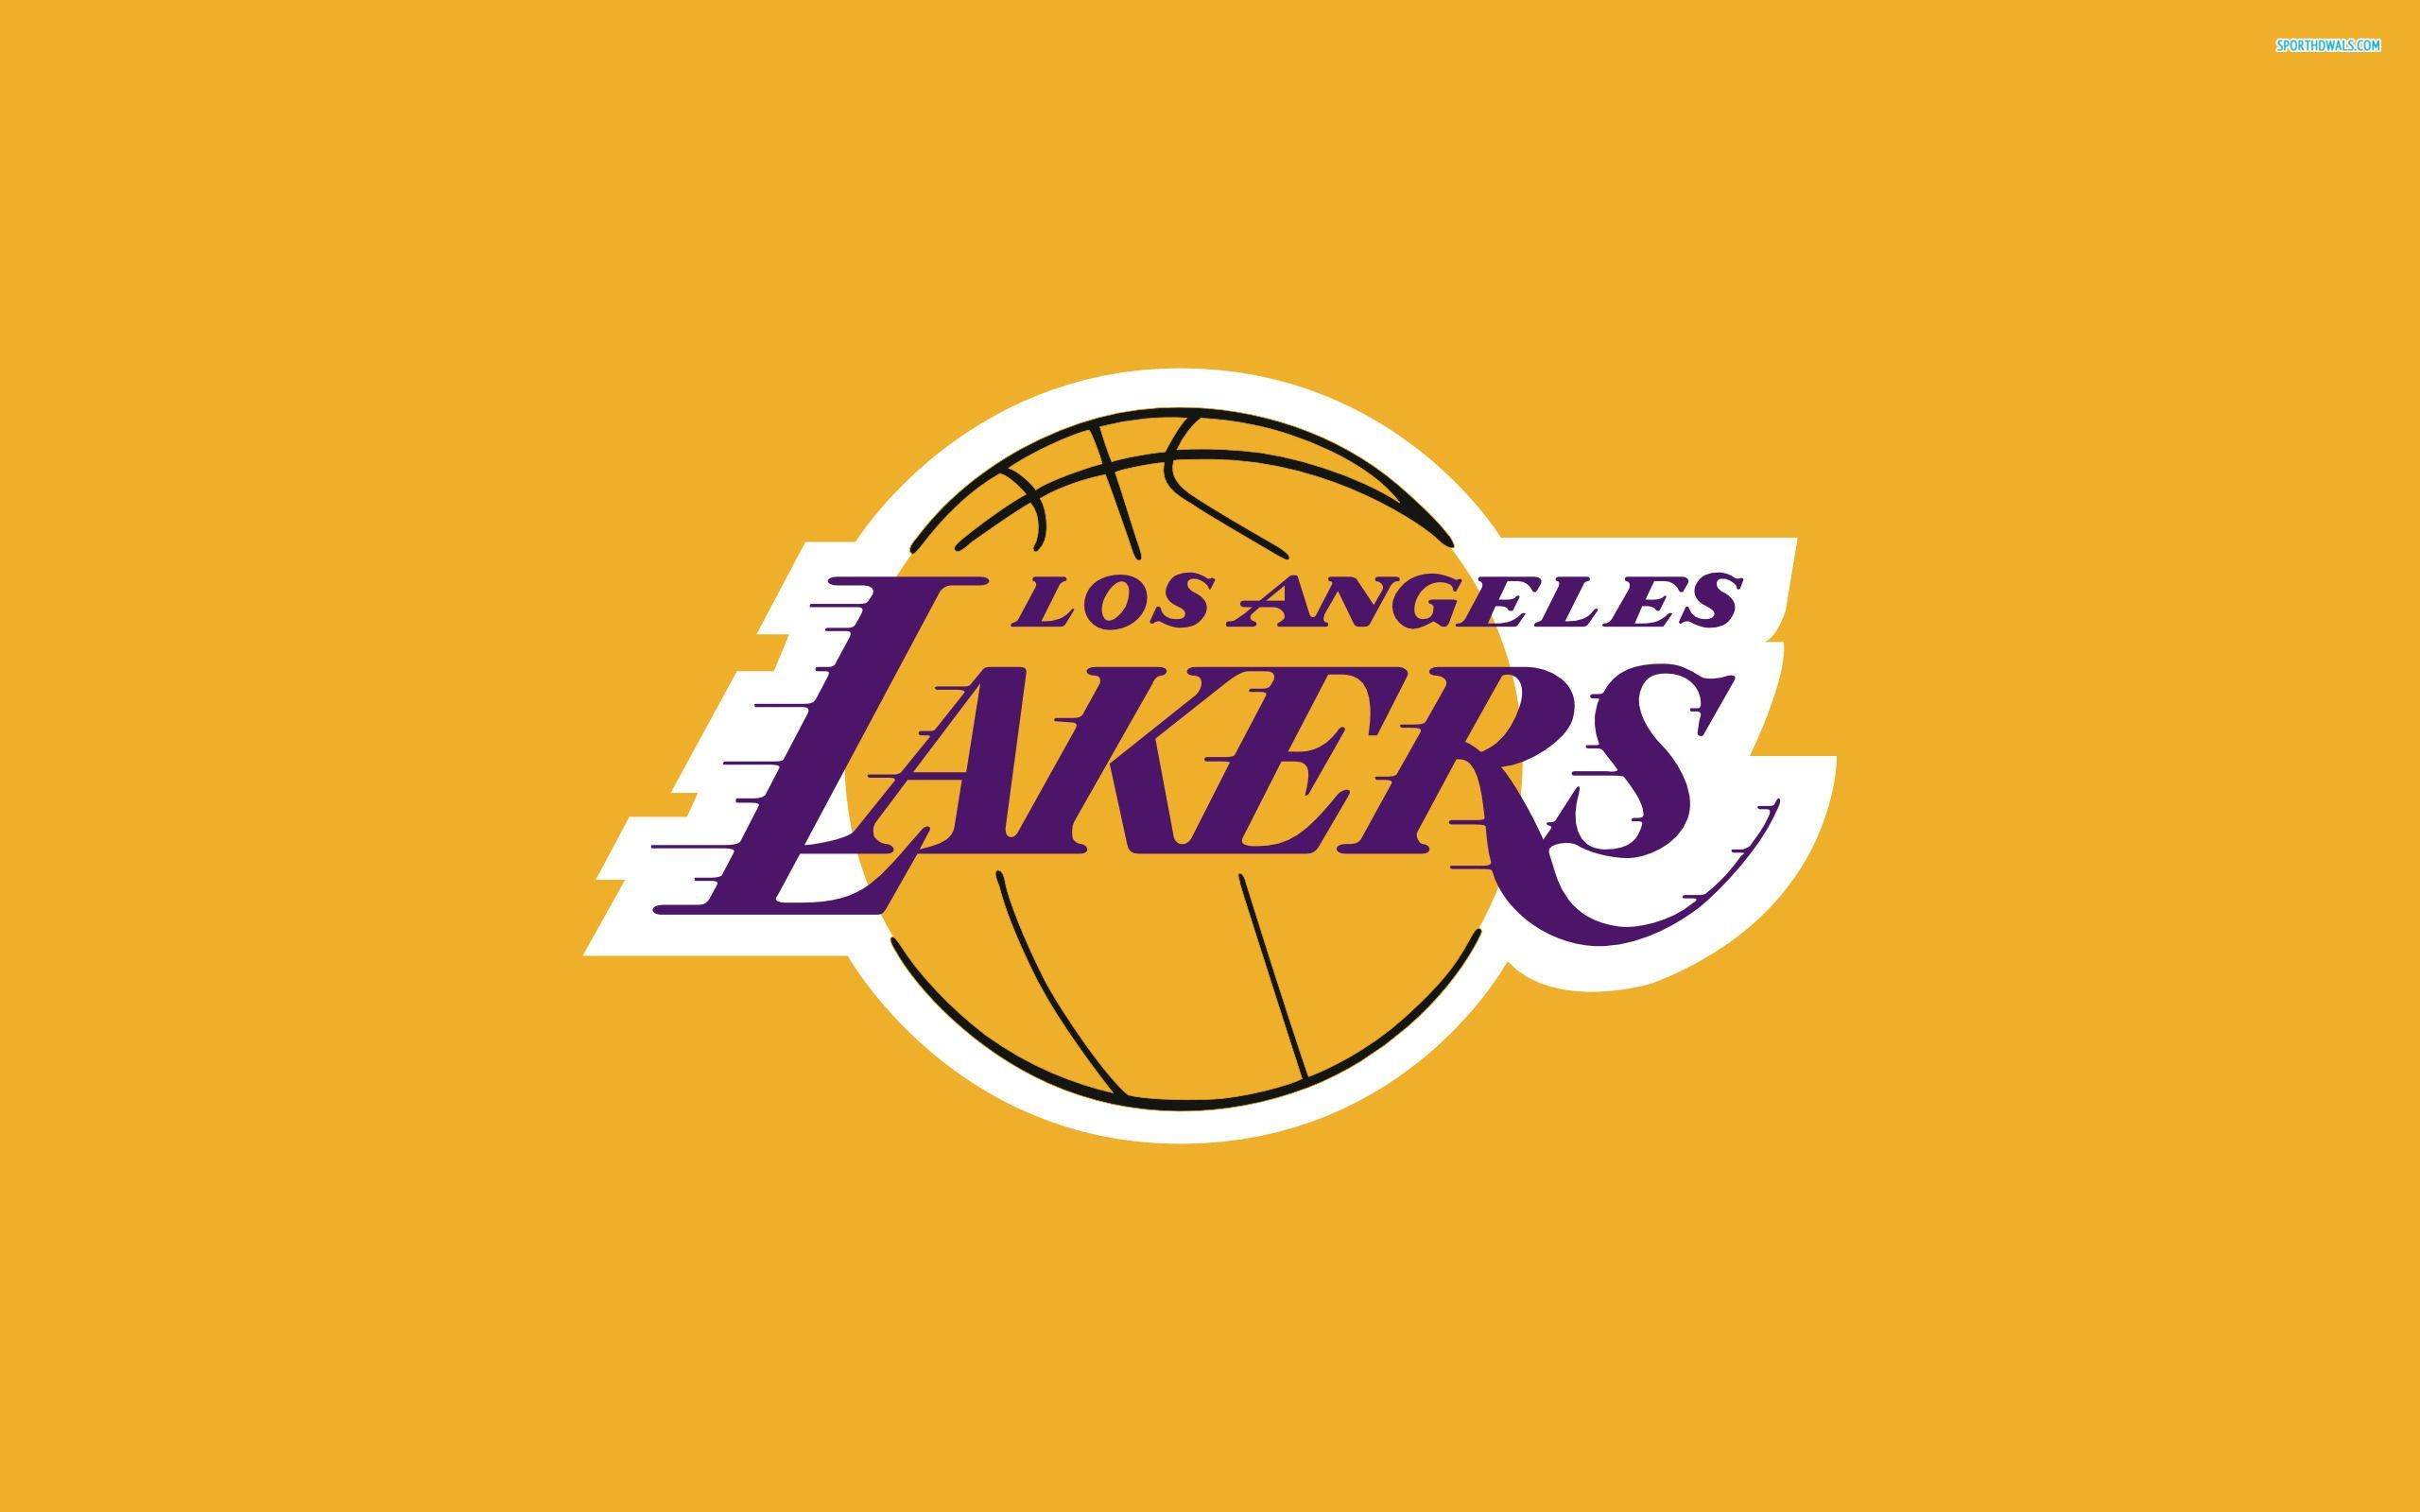 Lakers Wallpapers High Resolution Live Wallpaper Hd Lakers Logo Los Angeles Lakers Logo Lakers Wallpaper